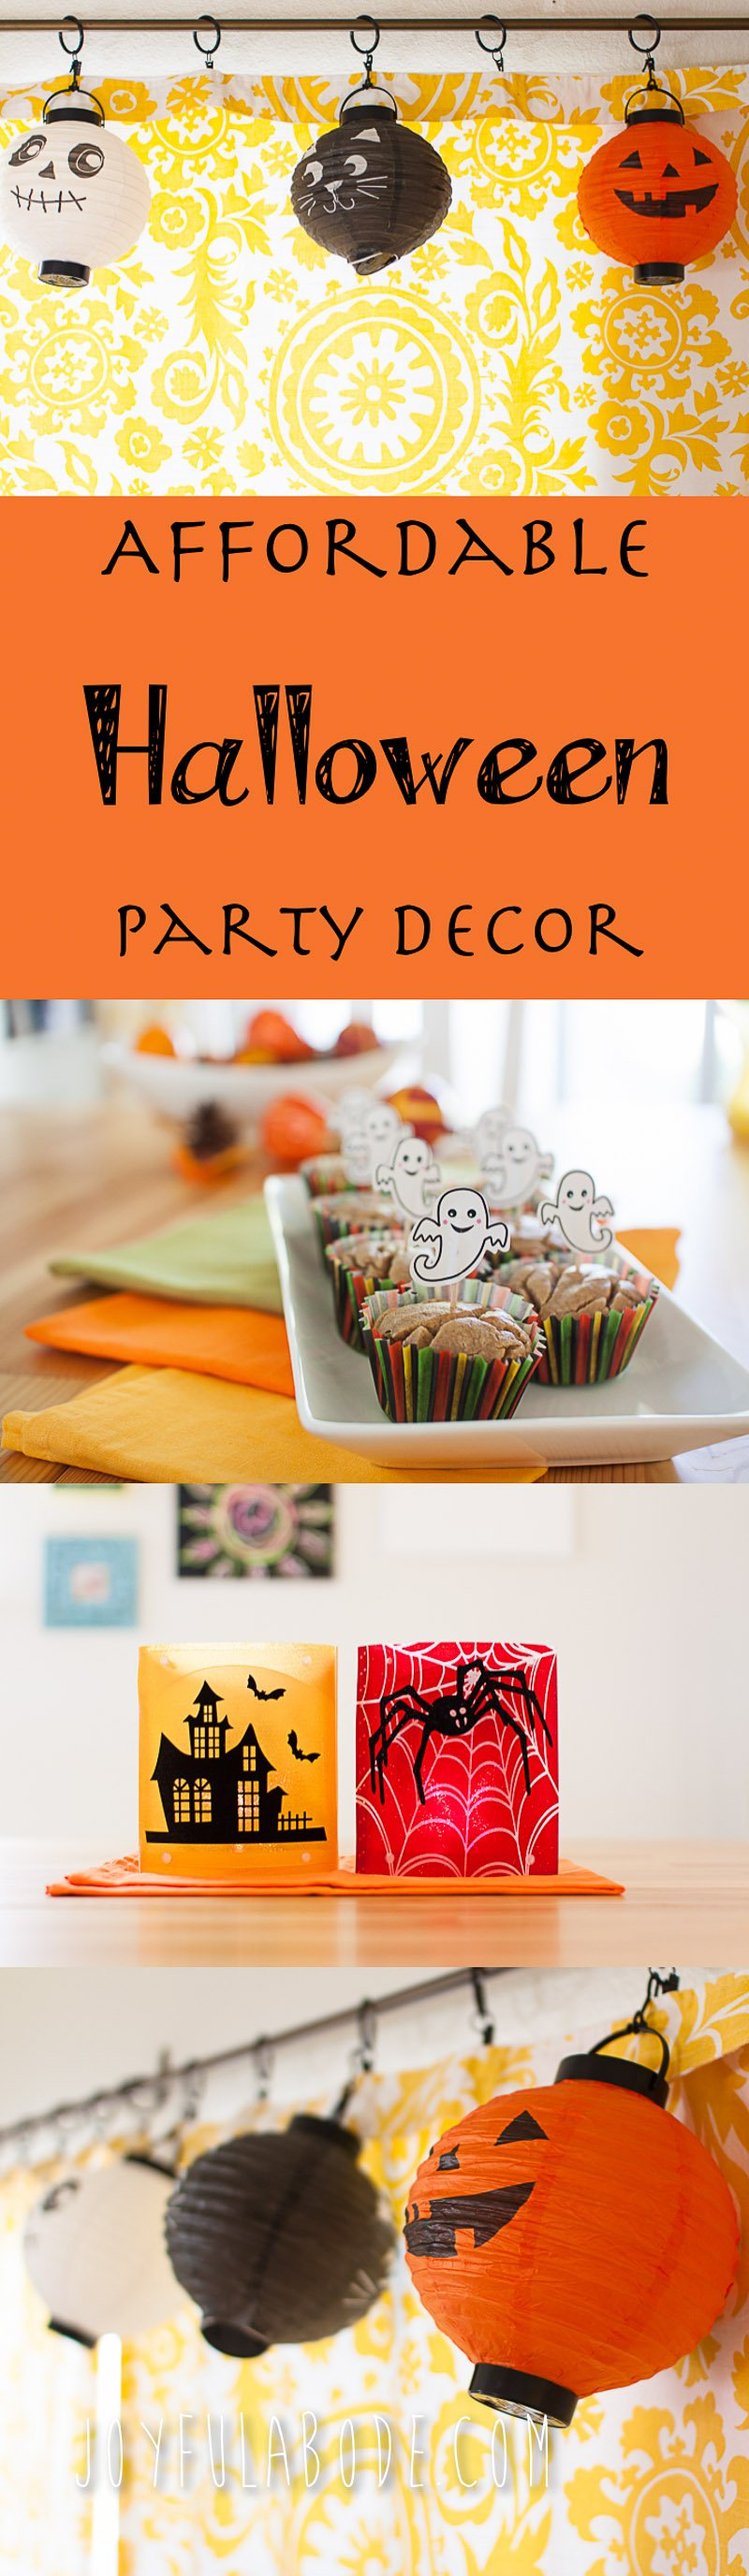 frugal halloween decor